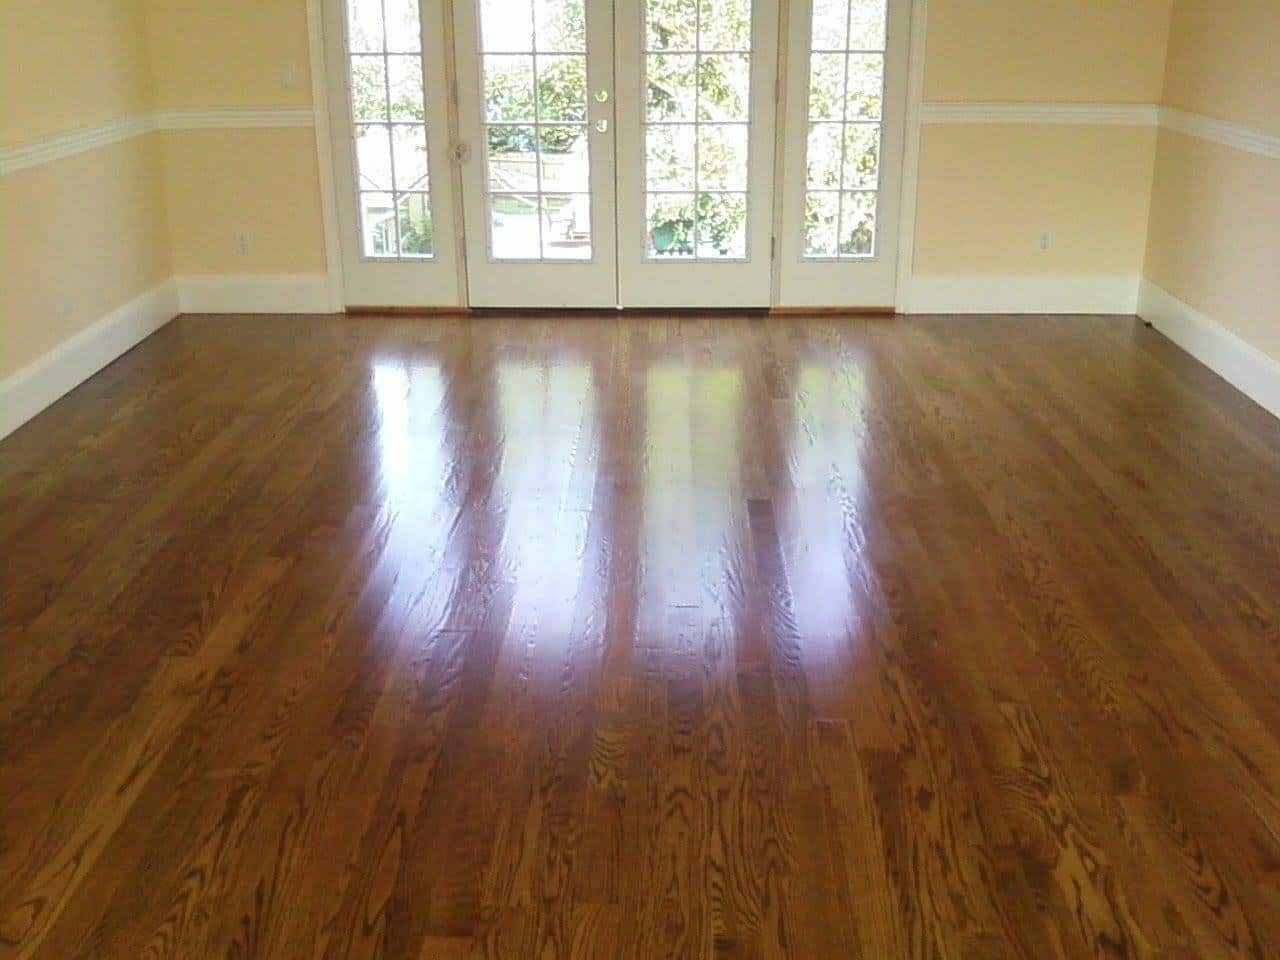 ... hardwood floors - Advanced Hardwood Flooring Inc., Long Island, NY